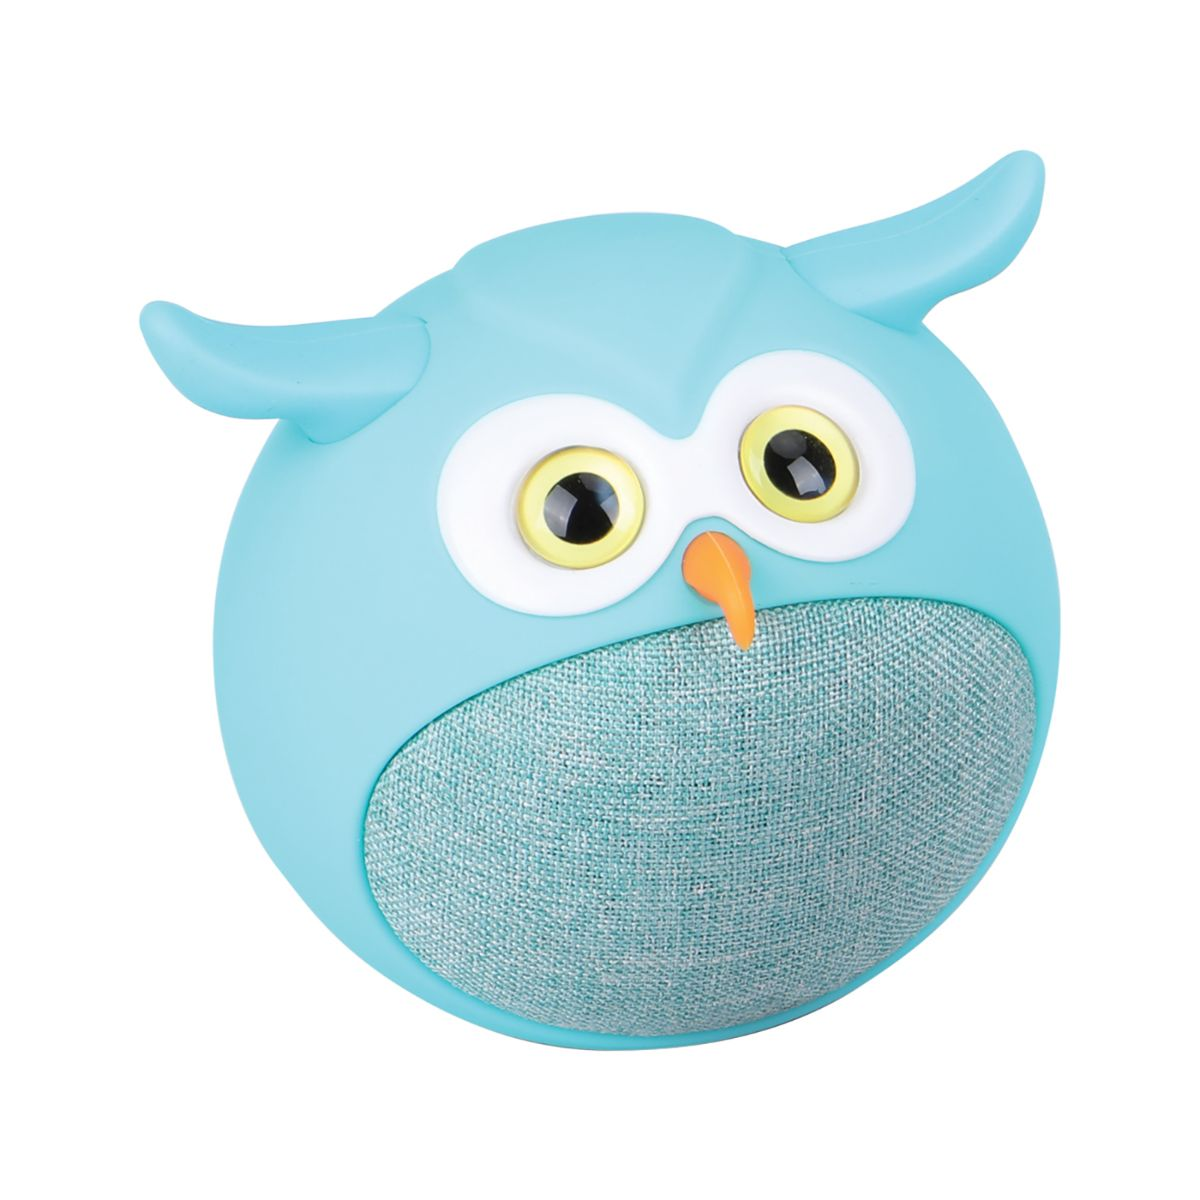 Promate True Wireless Speaker, Portable Mini Owl Bluetooth v5.0 Animal 3W Speaker with Built-In Microphone for Smartphones, Tablets, iPod - Blue